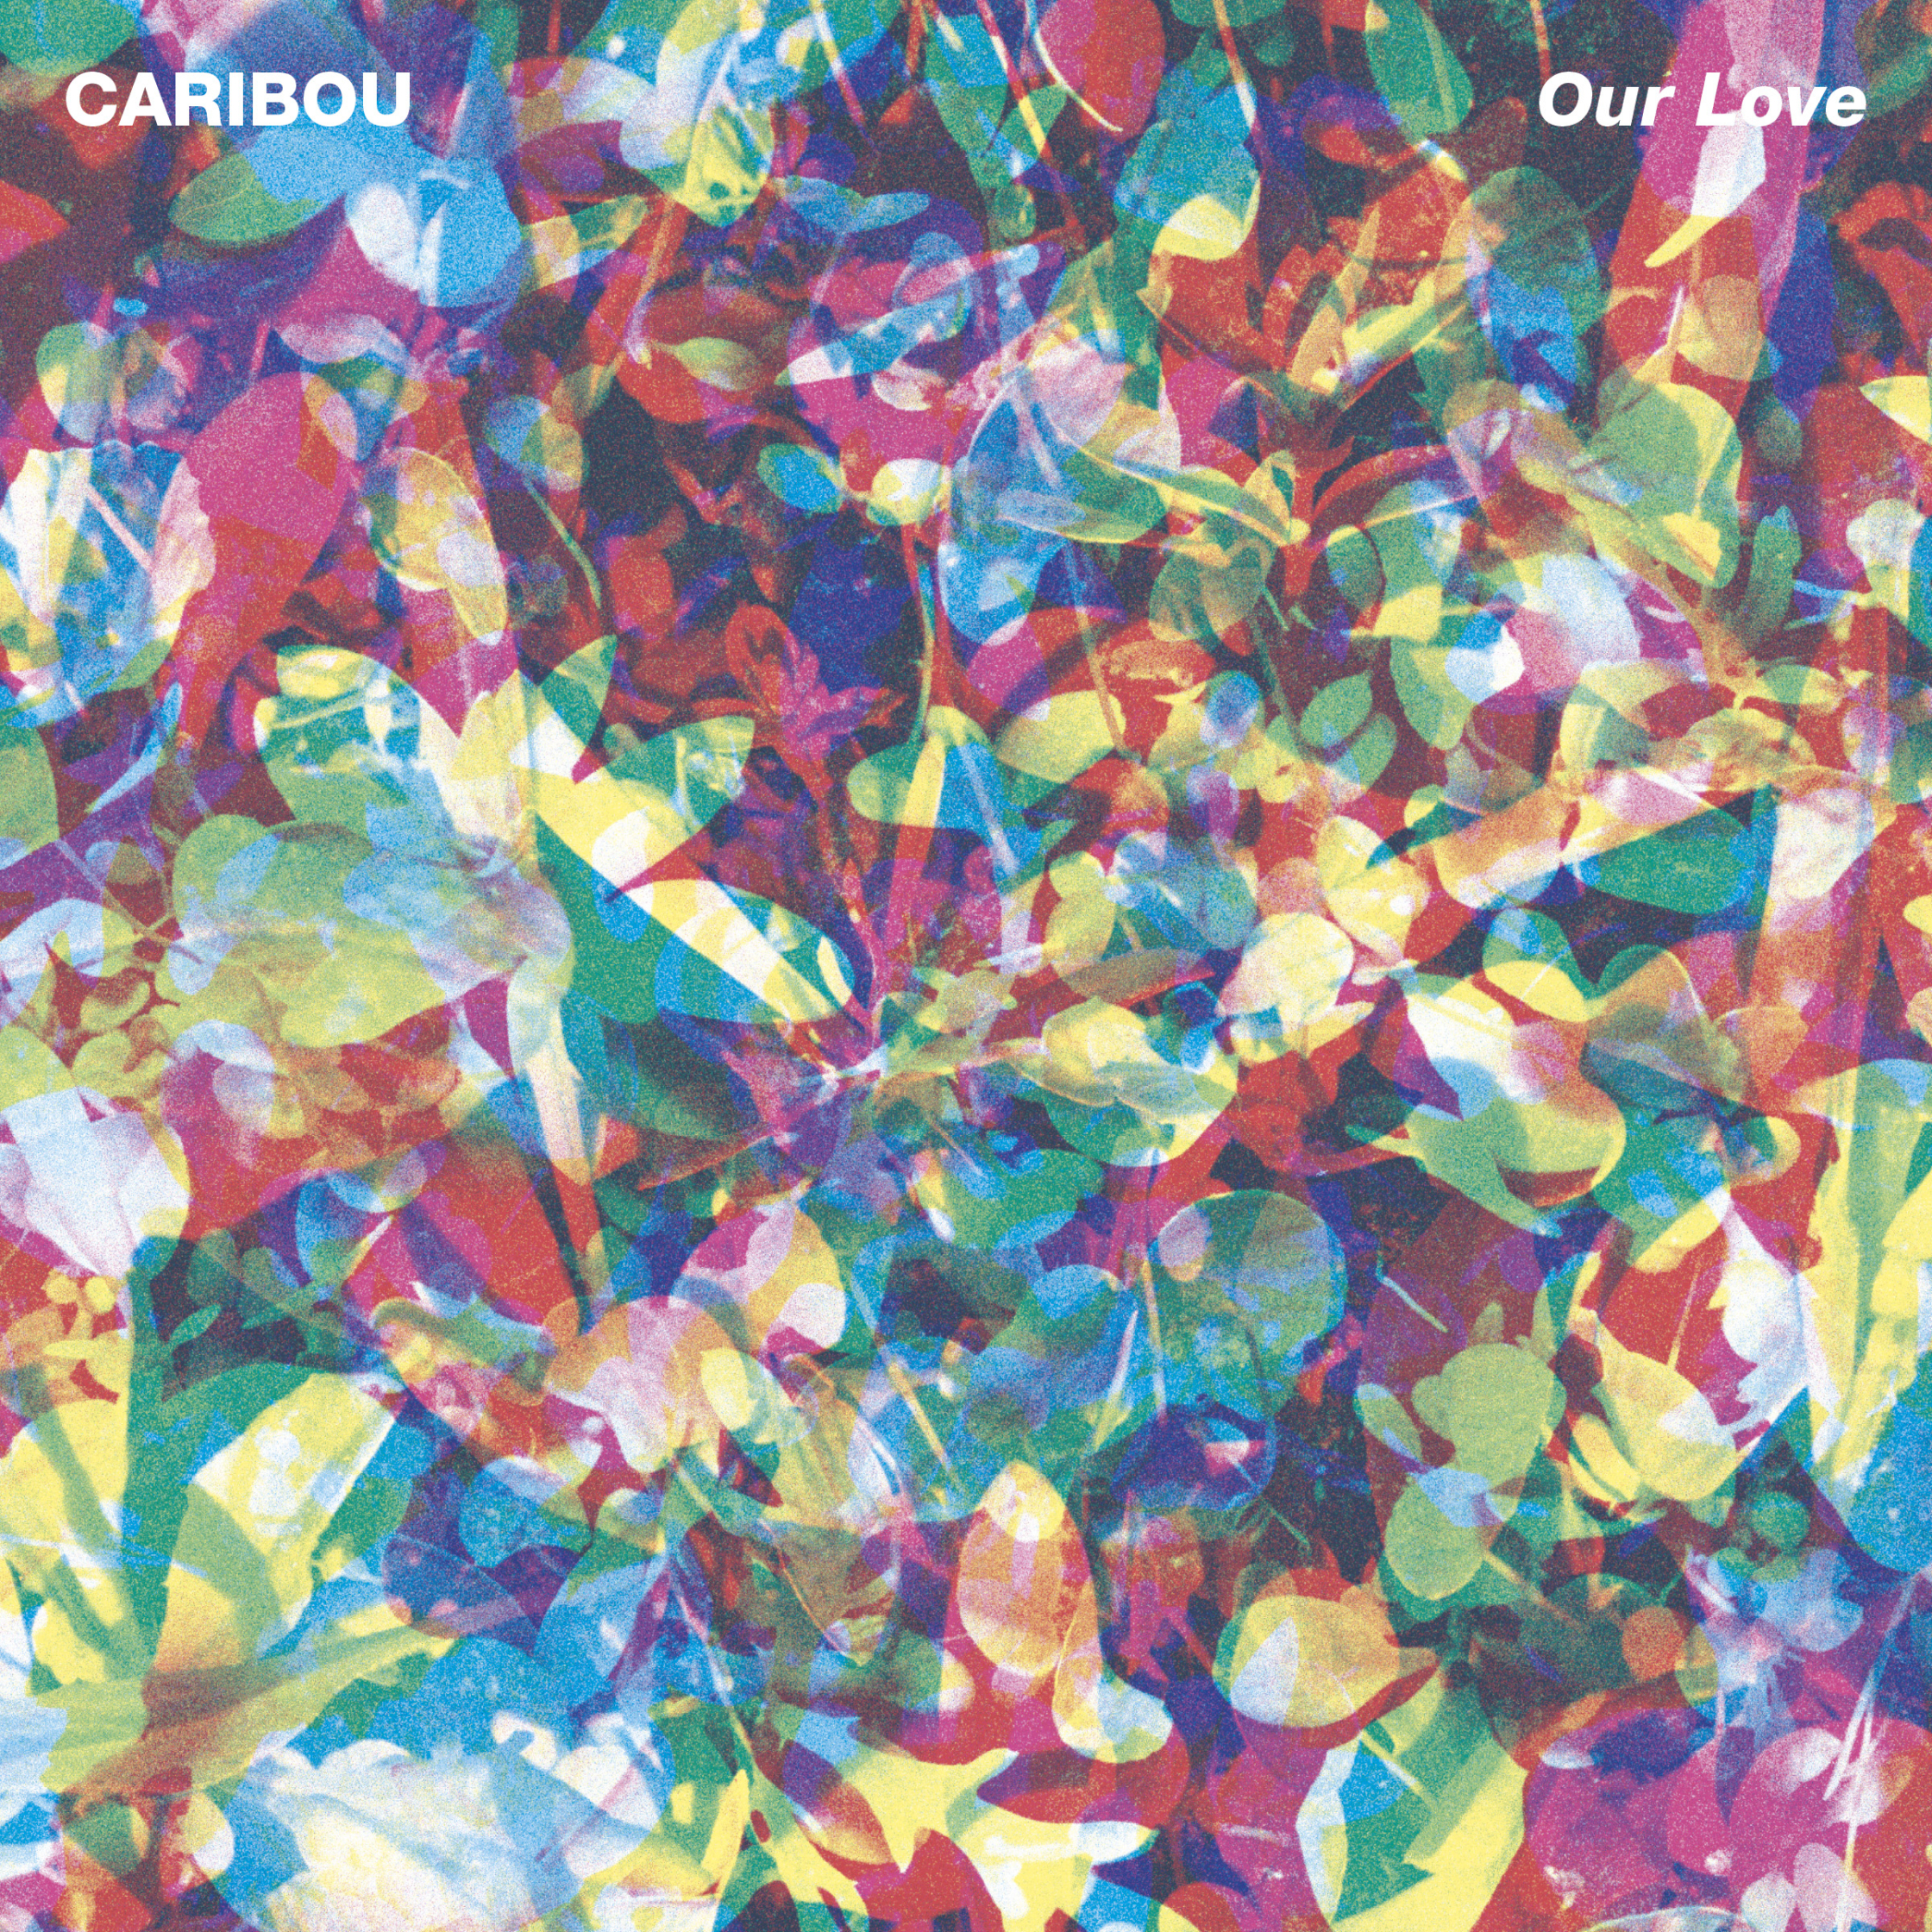 One Love / Caribou